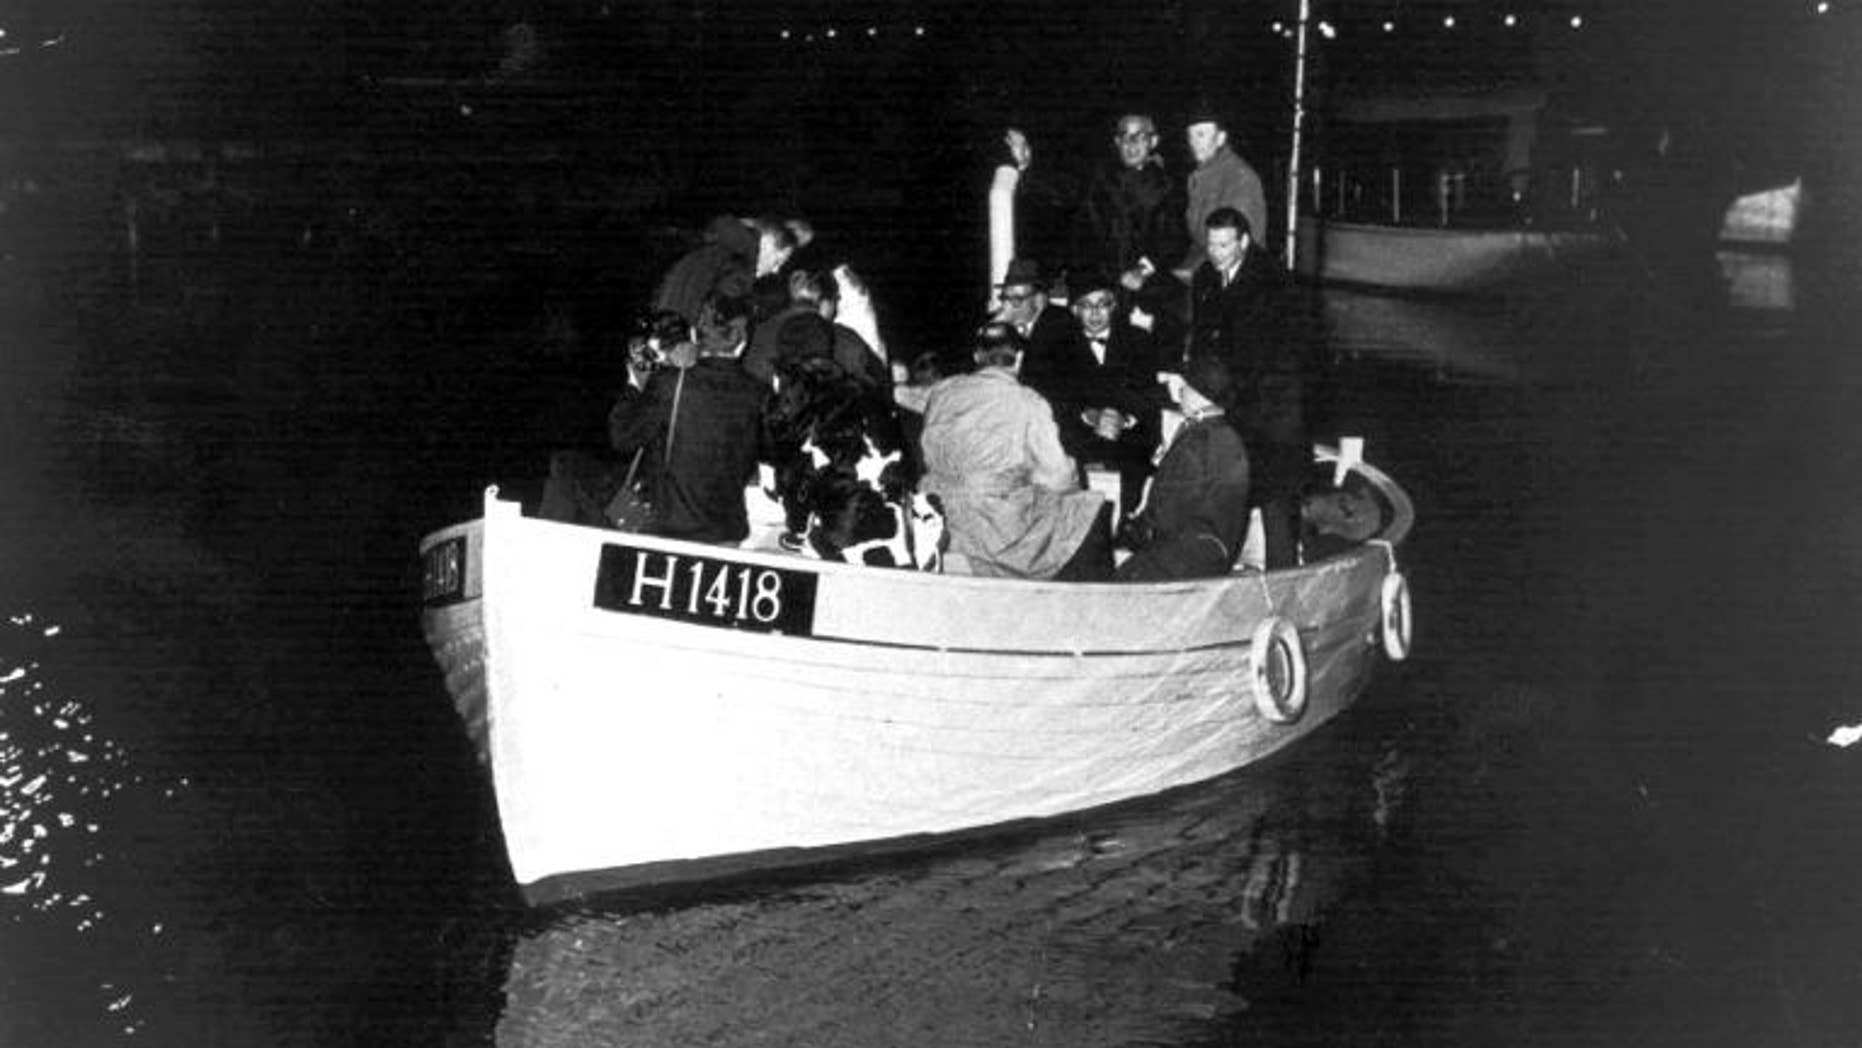 This 1943 photo shows a boat carrying people during the escape of some of 7,000 Danish Jews who fled to safety in neighbouring Sweden